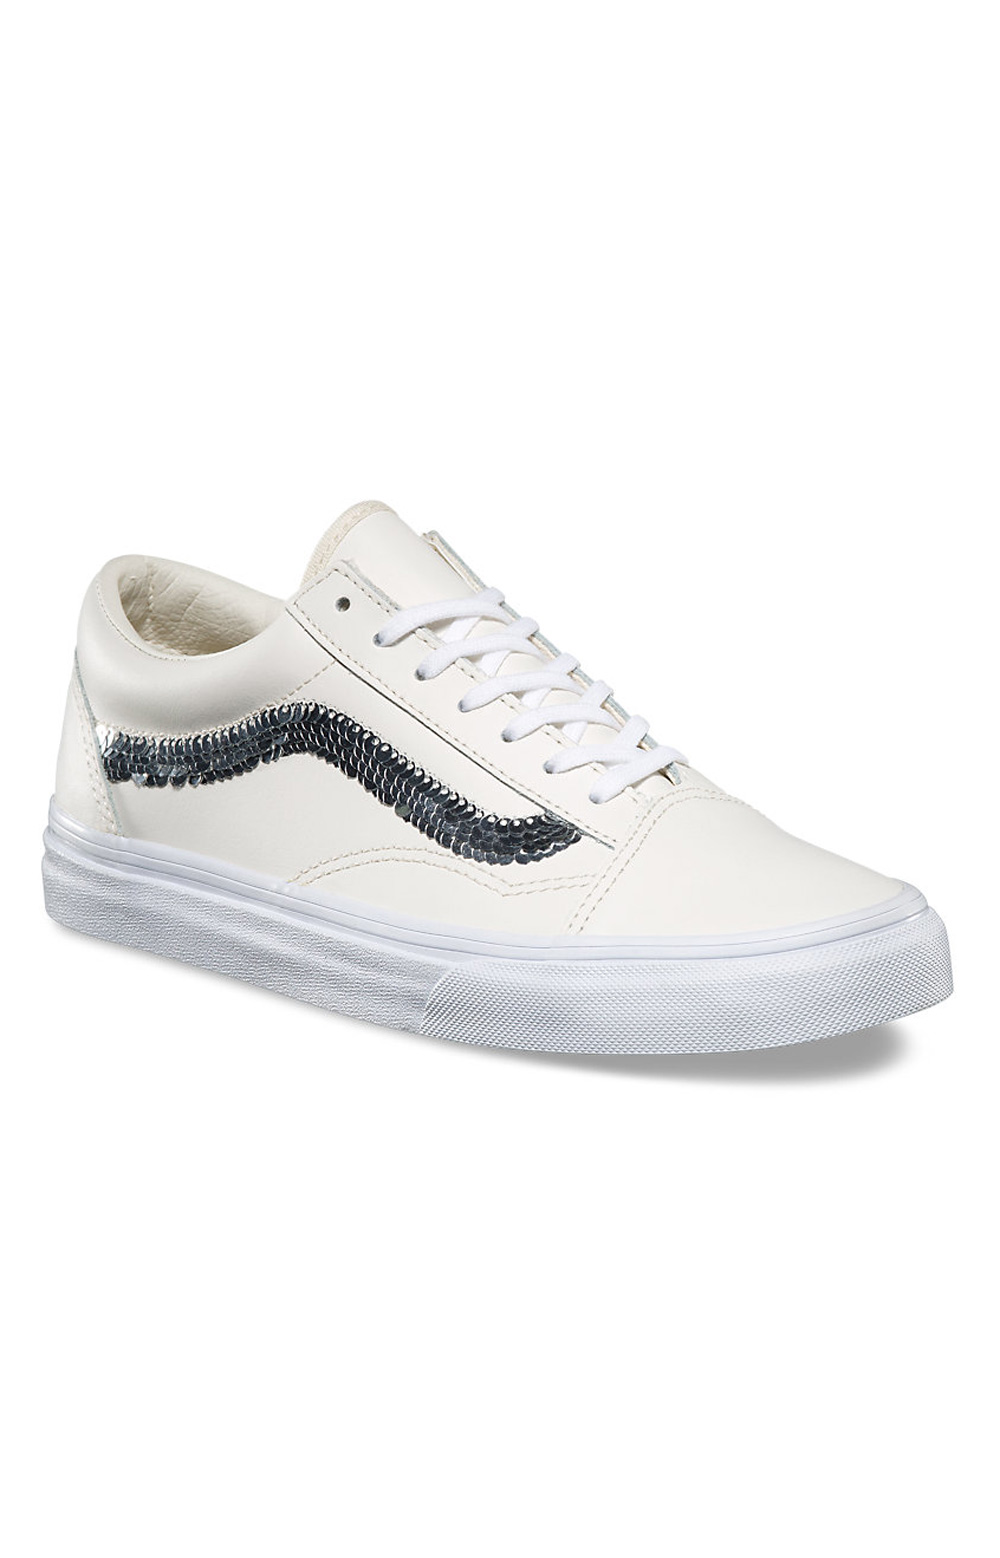 (8G1QVY) Old Skool Shiny Sequins Shoe - Marshmallow  3